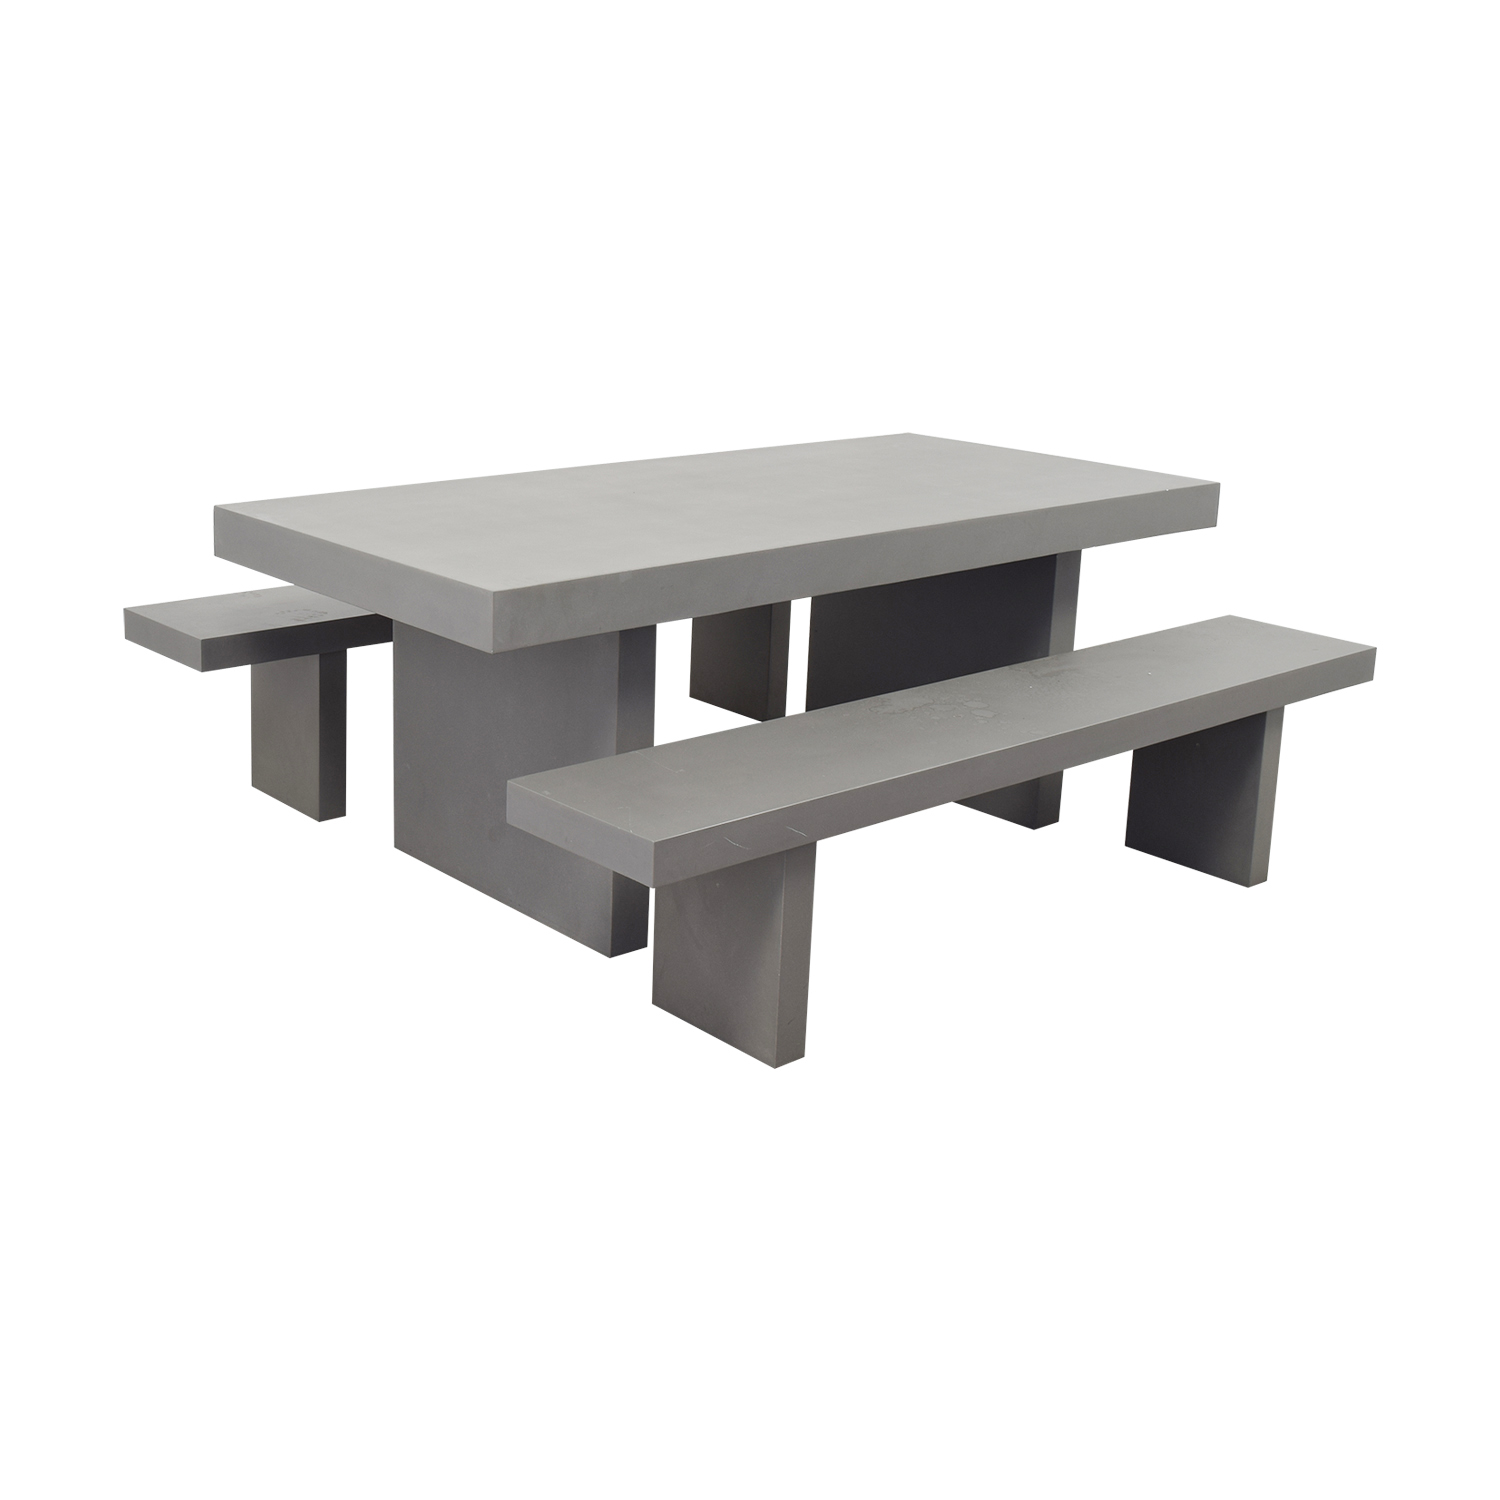 West Elm West Elm Quarry Gray Rectangle Dining Table and Benches